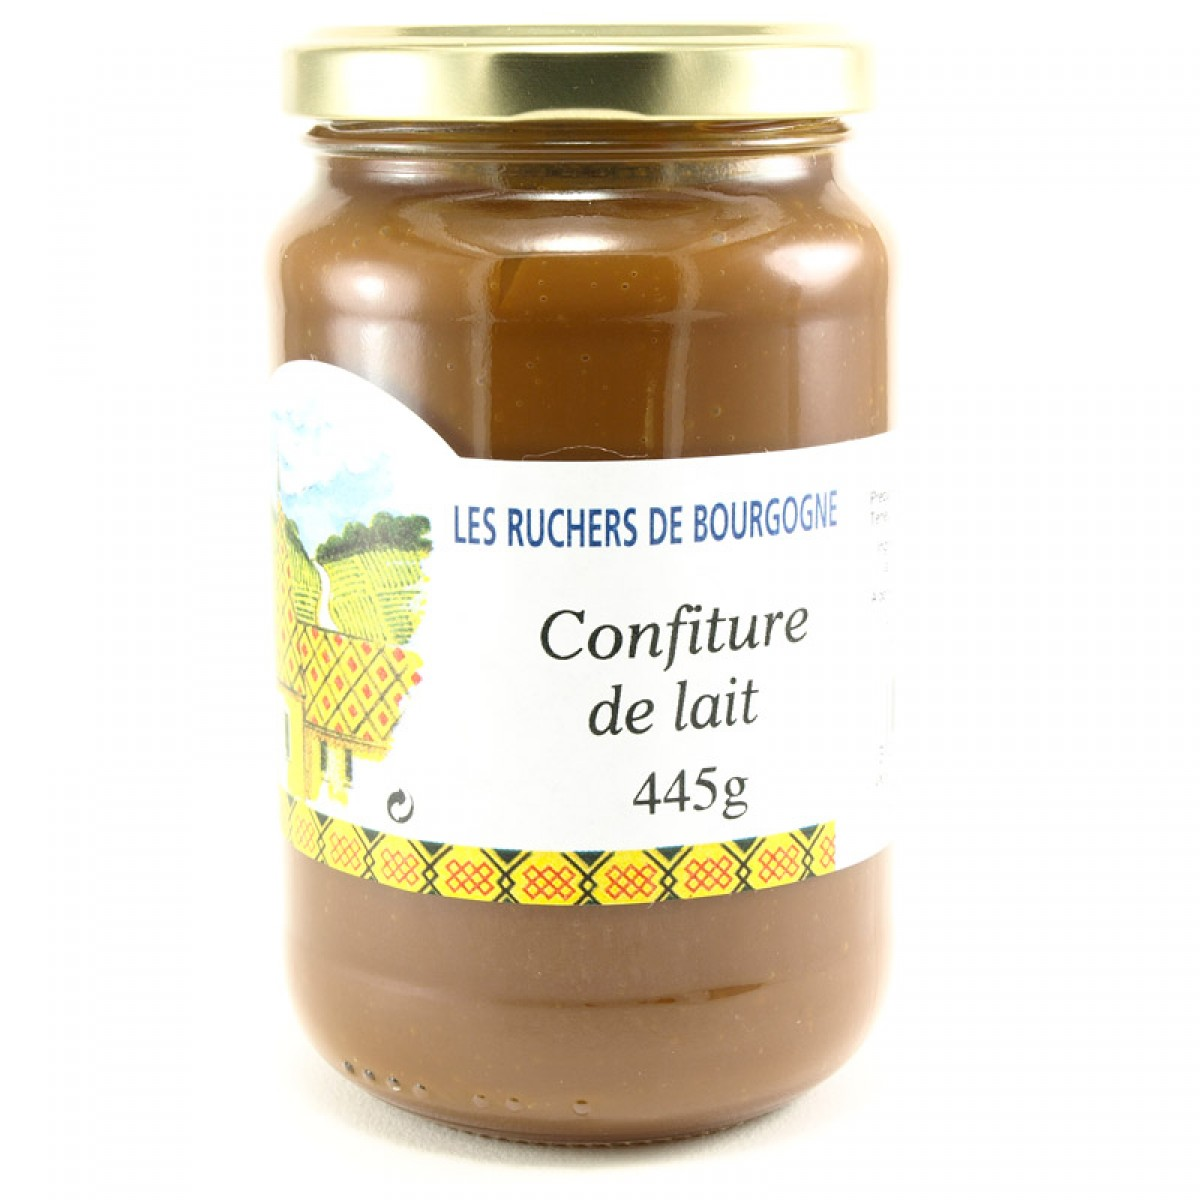 confiture de lait 445g saveurs de bourgogne vente de produits du terroir. Black Bedroom Furniture Sets. Home Design Ideas